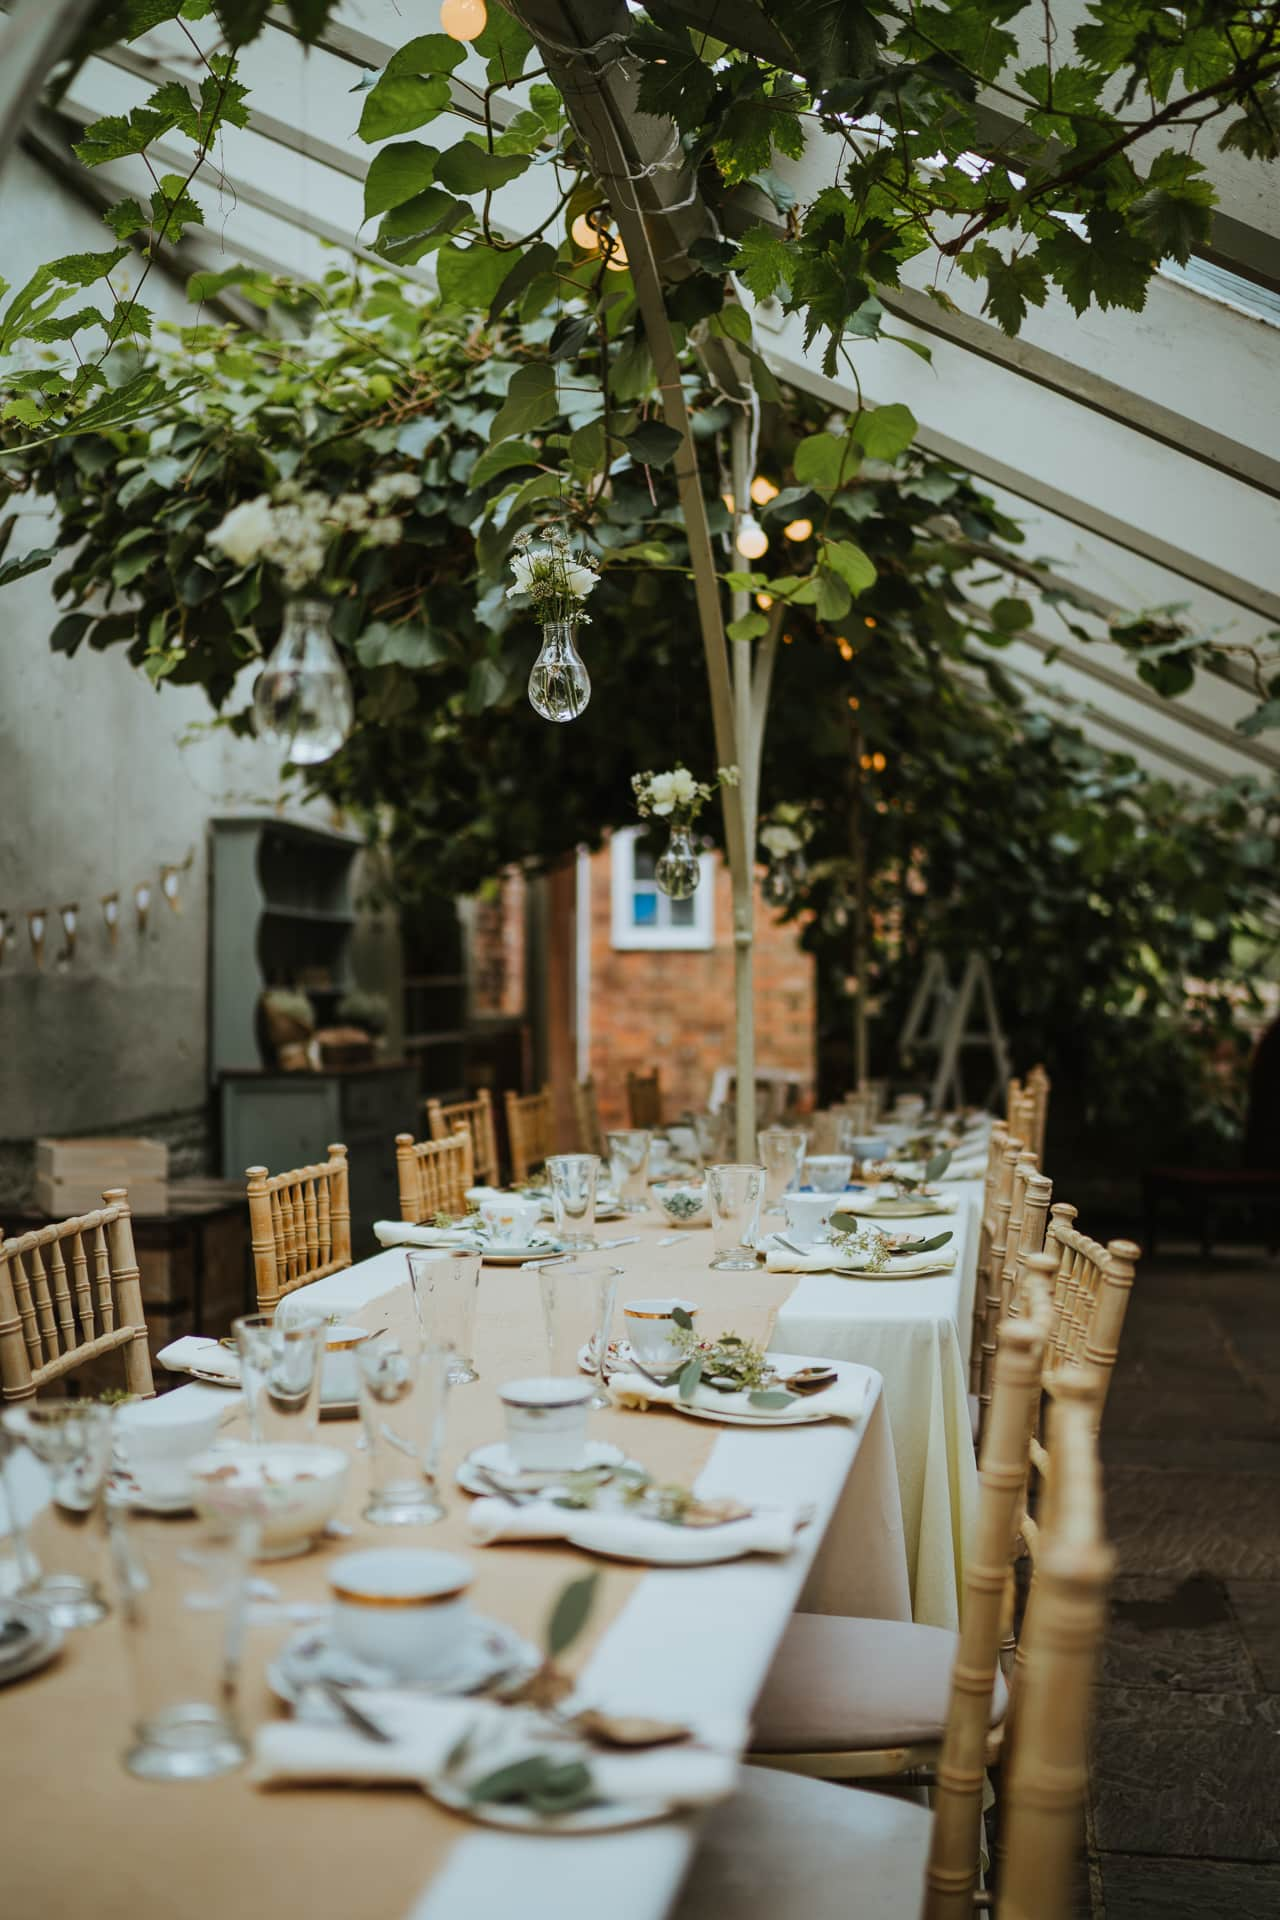 Wedding reception decoration in the Glass house at The Secret Garden wedding venue Kent